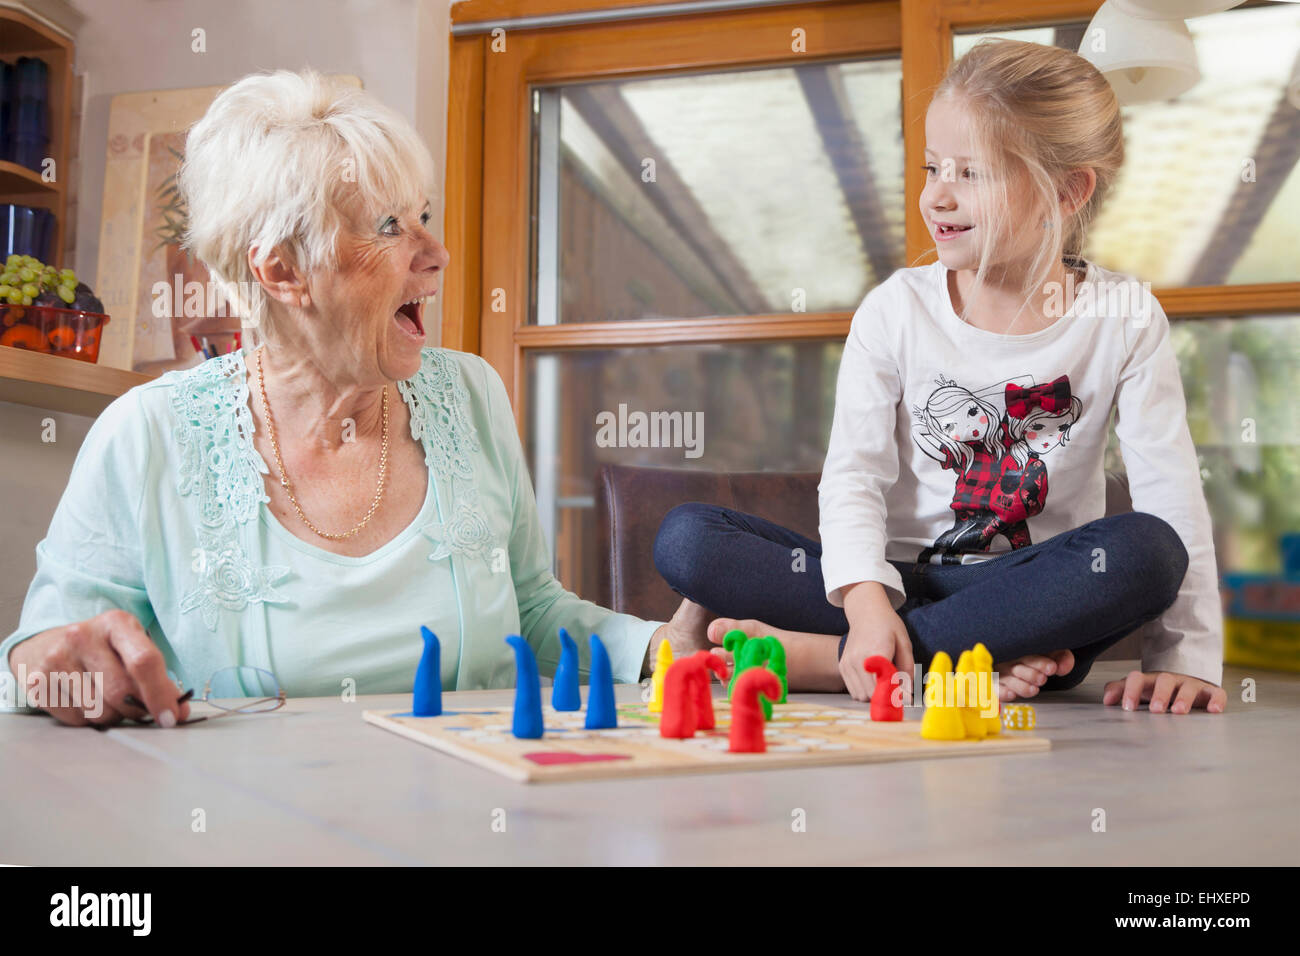 Girl playing board game with her grandmother, Bavaria, Germany - Stock Image